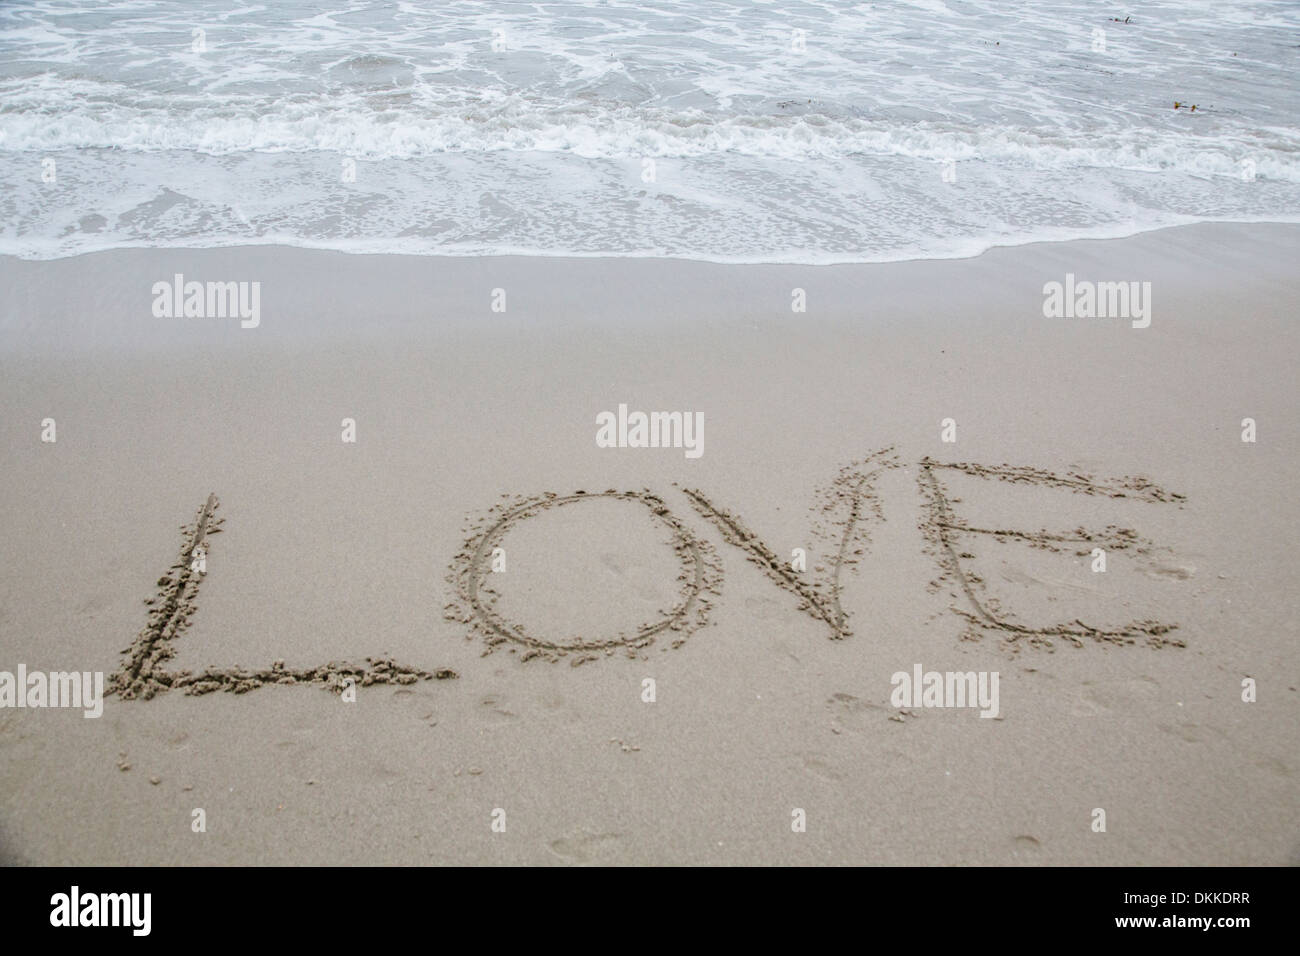 'Love' written in wet sand - Stock Image